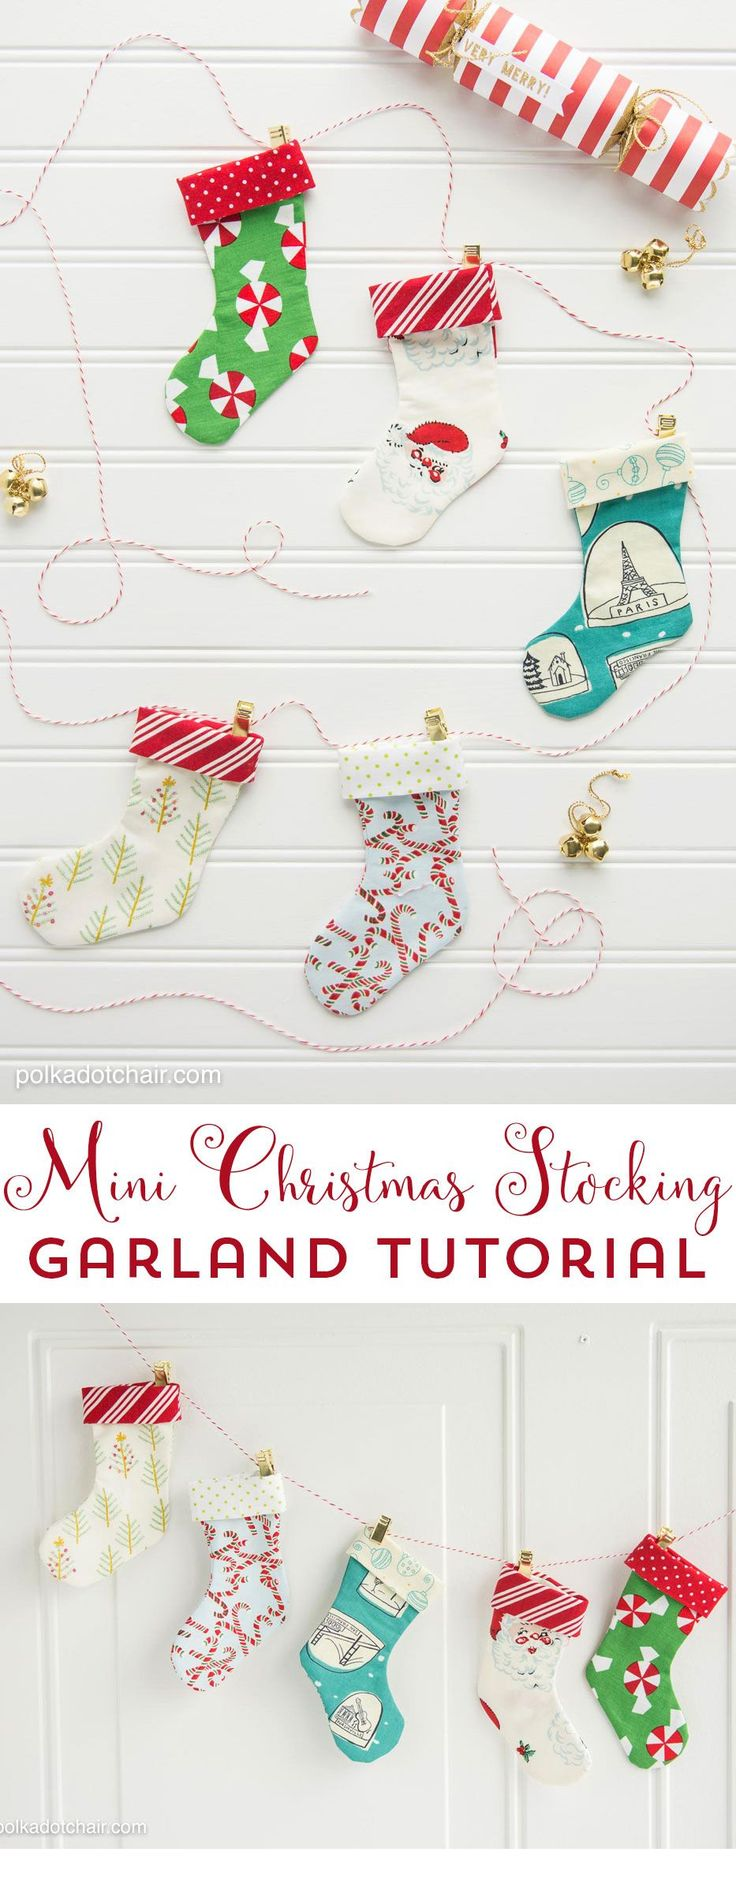 Mini Christmas Stocking Garland Sewing tutorial by Melissa of polkadotchair.com #freepattern #christmas #christmassewing #christmasstocking #sewing #christmasgiftidea